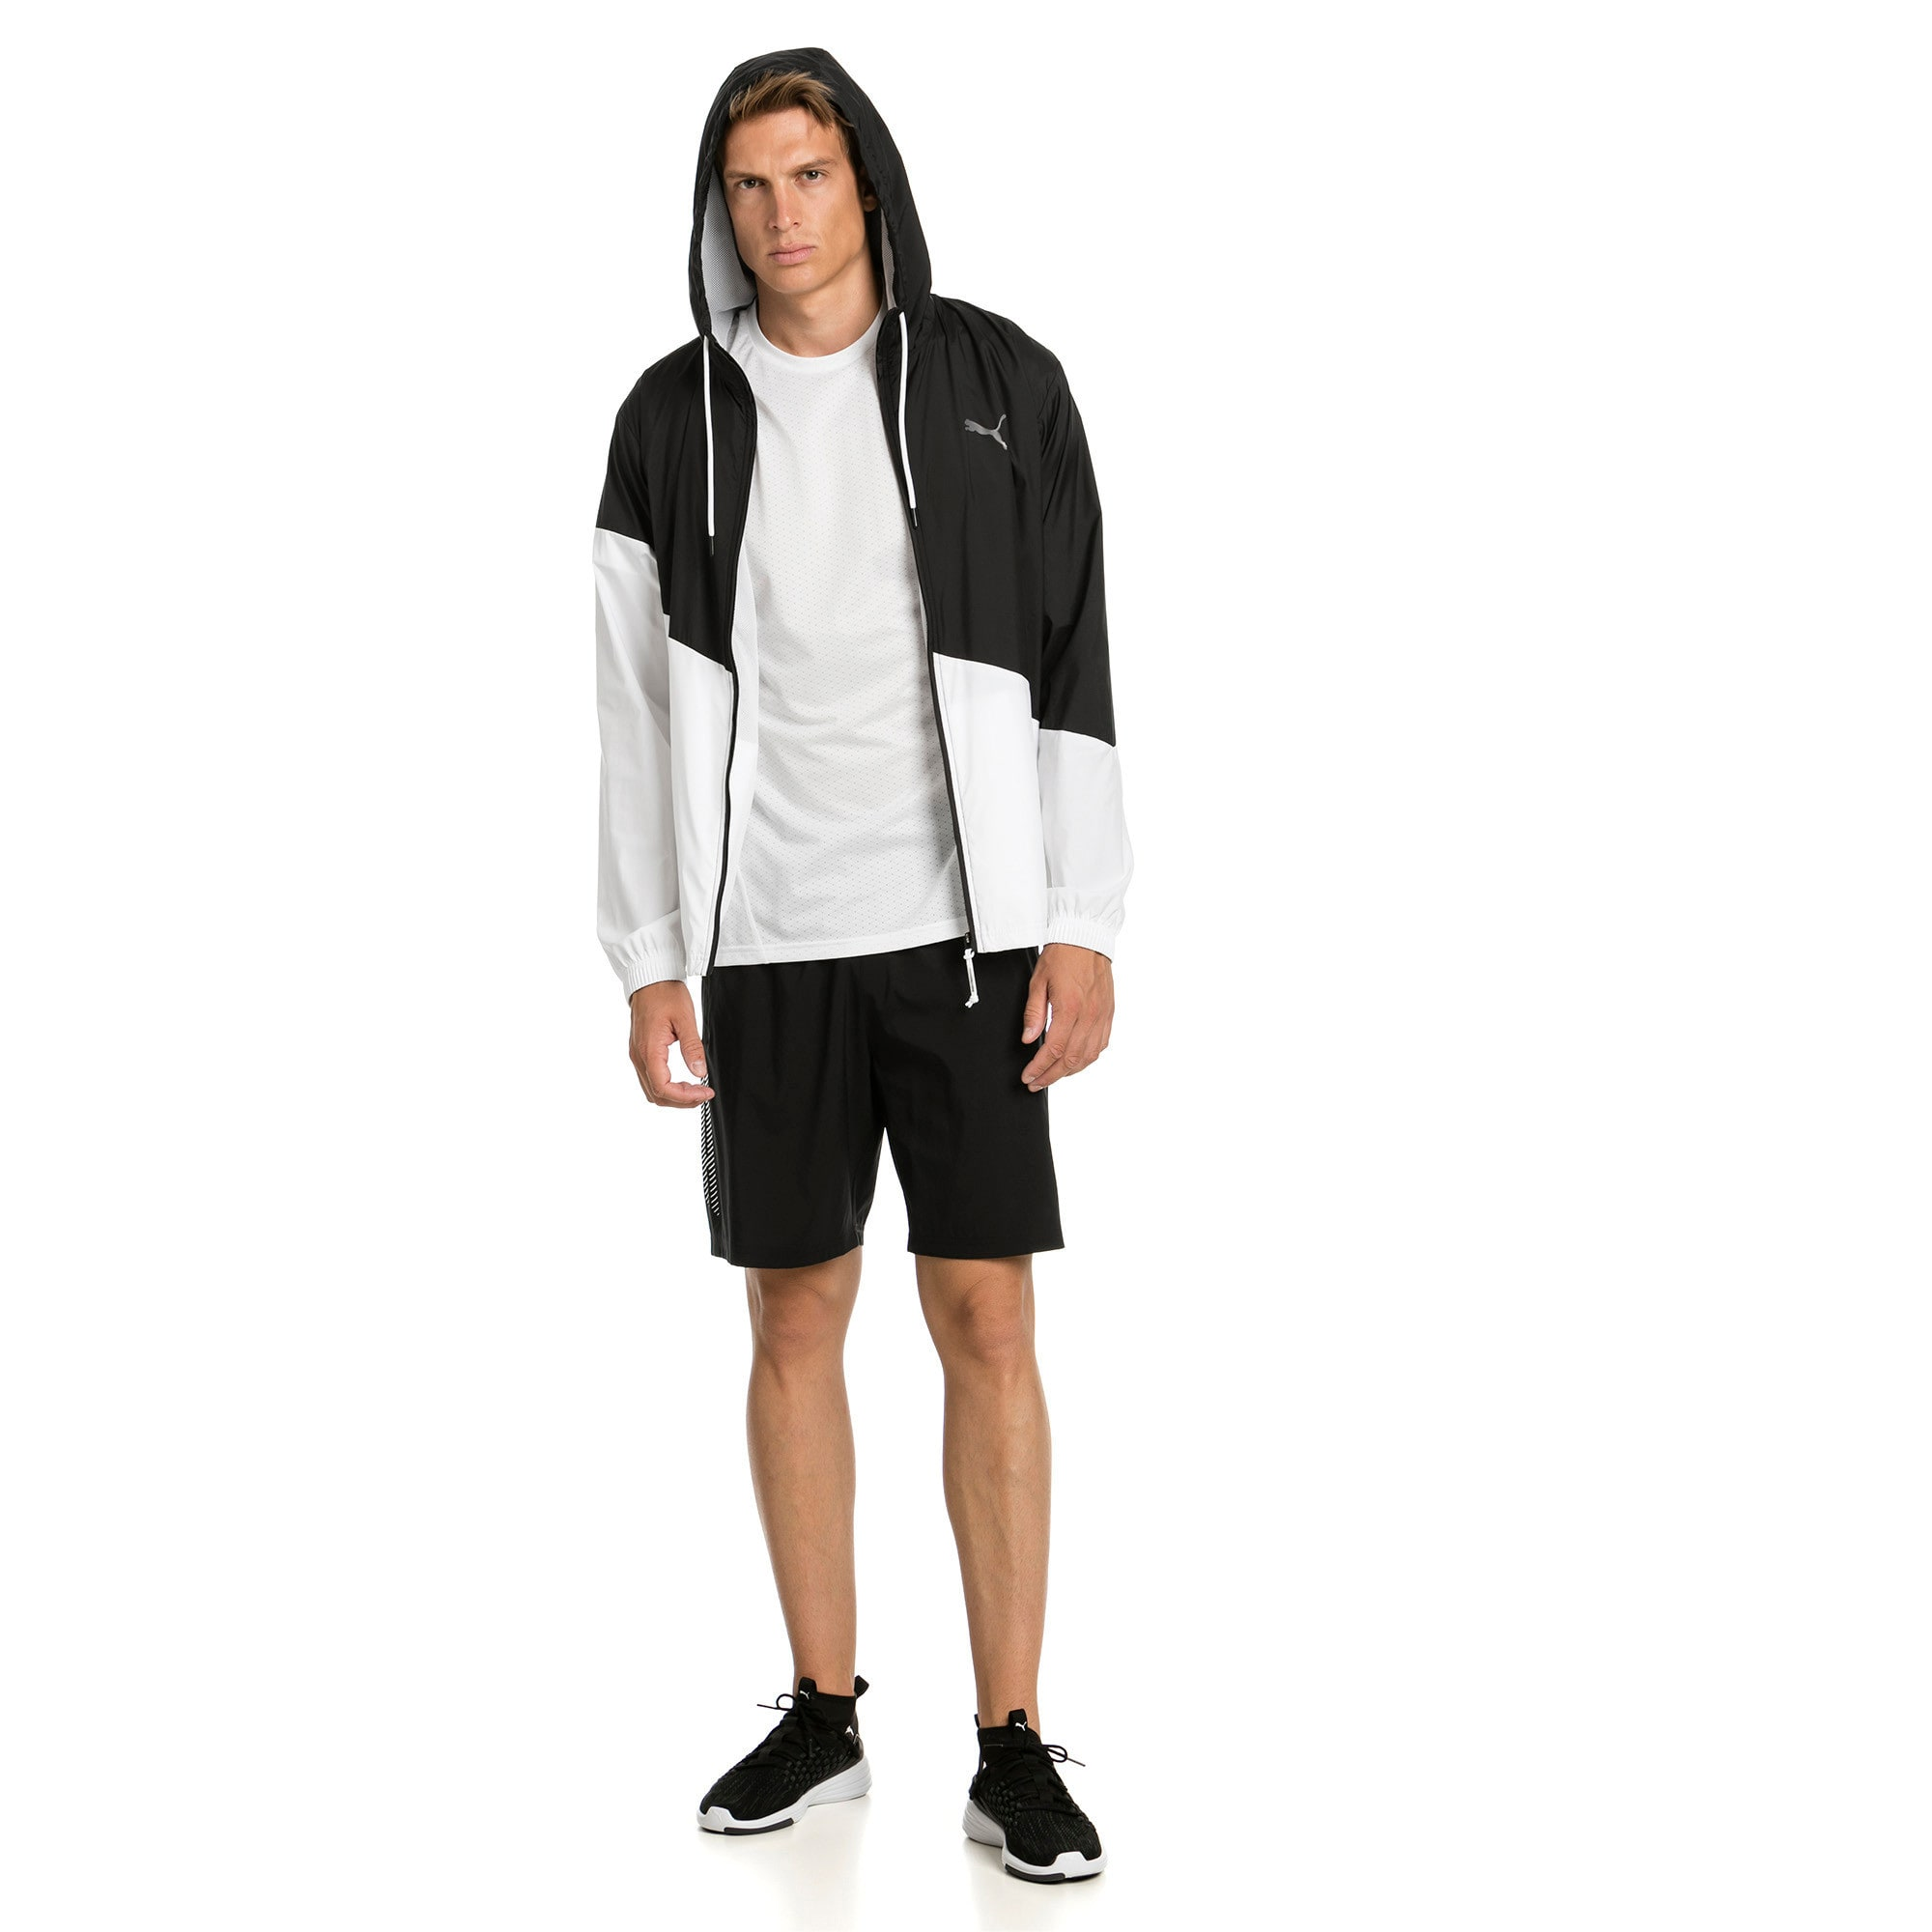 Thumbnail 3 of A.C.E. Men's Windbreaker, Puma Black-Puma White, medium